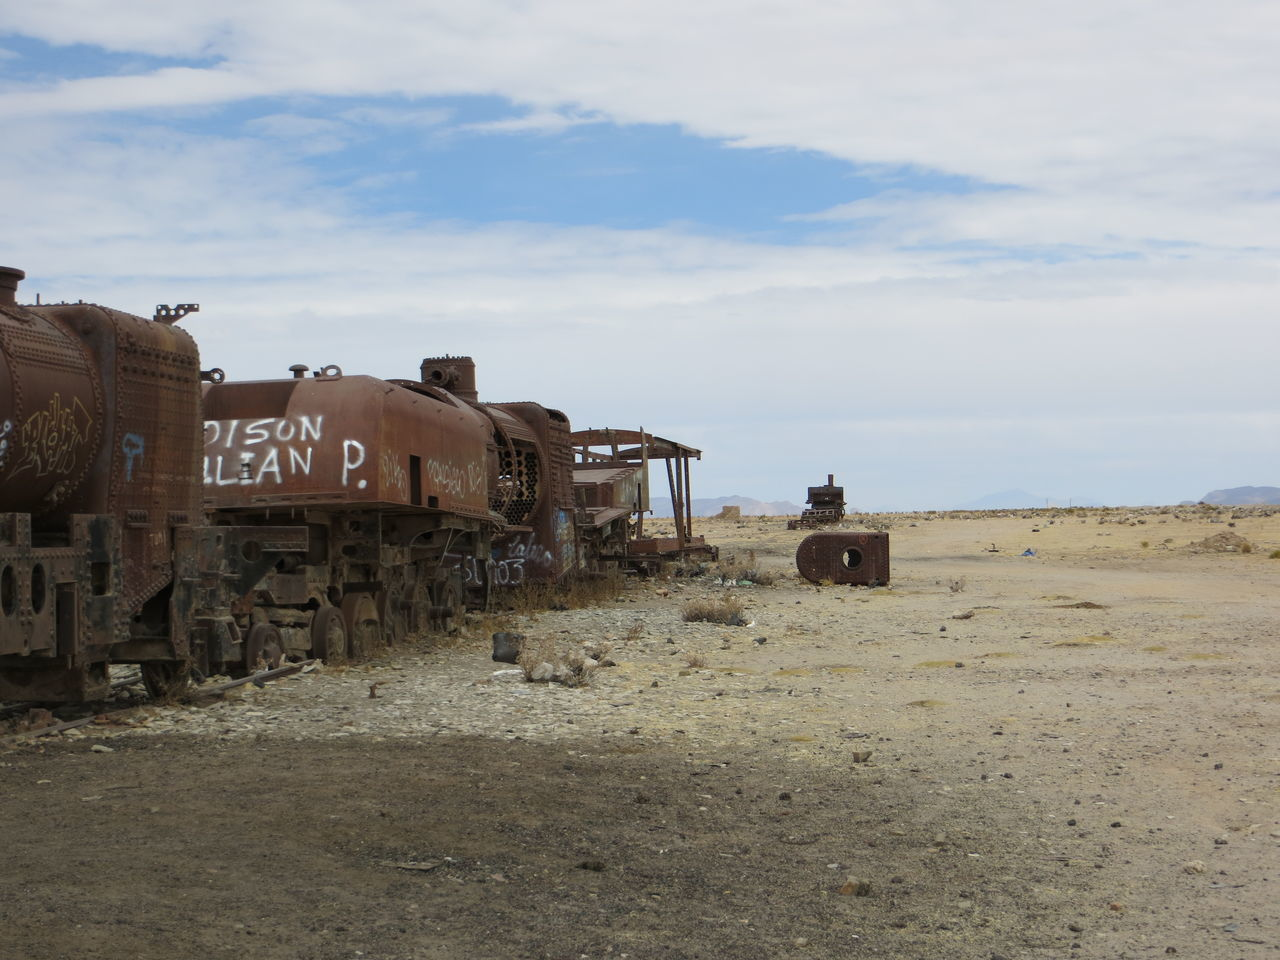 Abandoned Abondened Abondened Places Agriculture Ancient Civilization Bolivia Bolivia Uyuni Crop  Day Destruction Farm Field Grass Grassy Horizon Over Land Land Vehicle Landscape Obsolete Outdoors Ruined Rural Scene Sky Solitude Train The KIOMI Collection